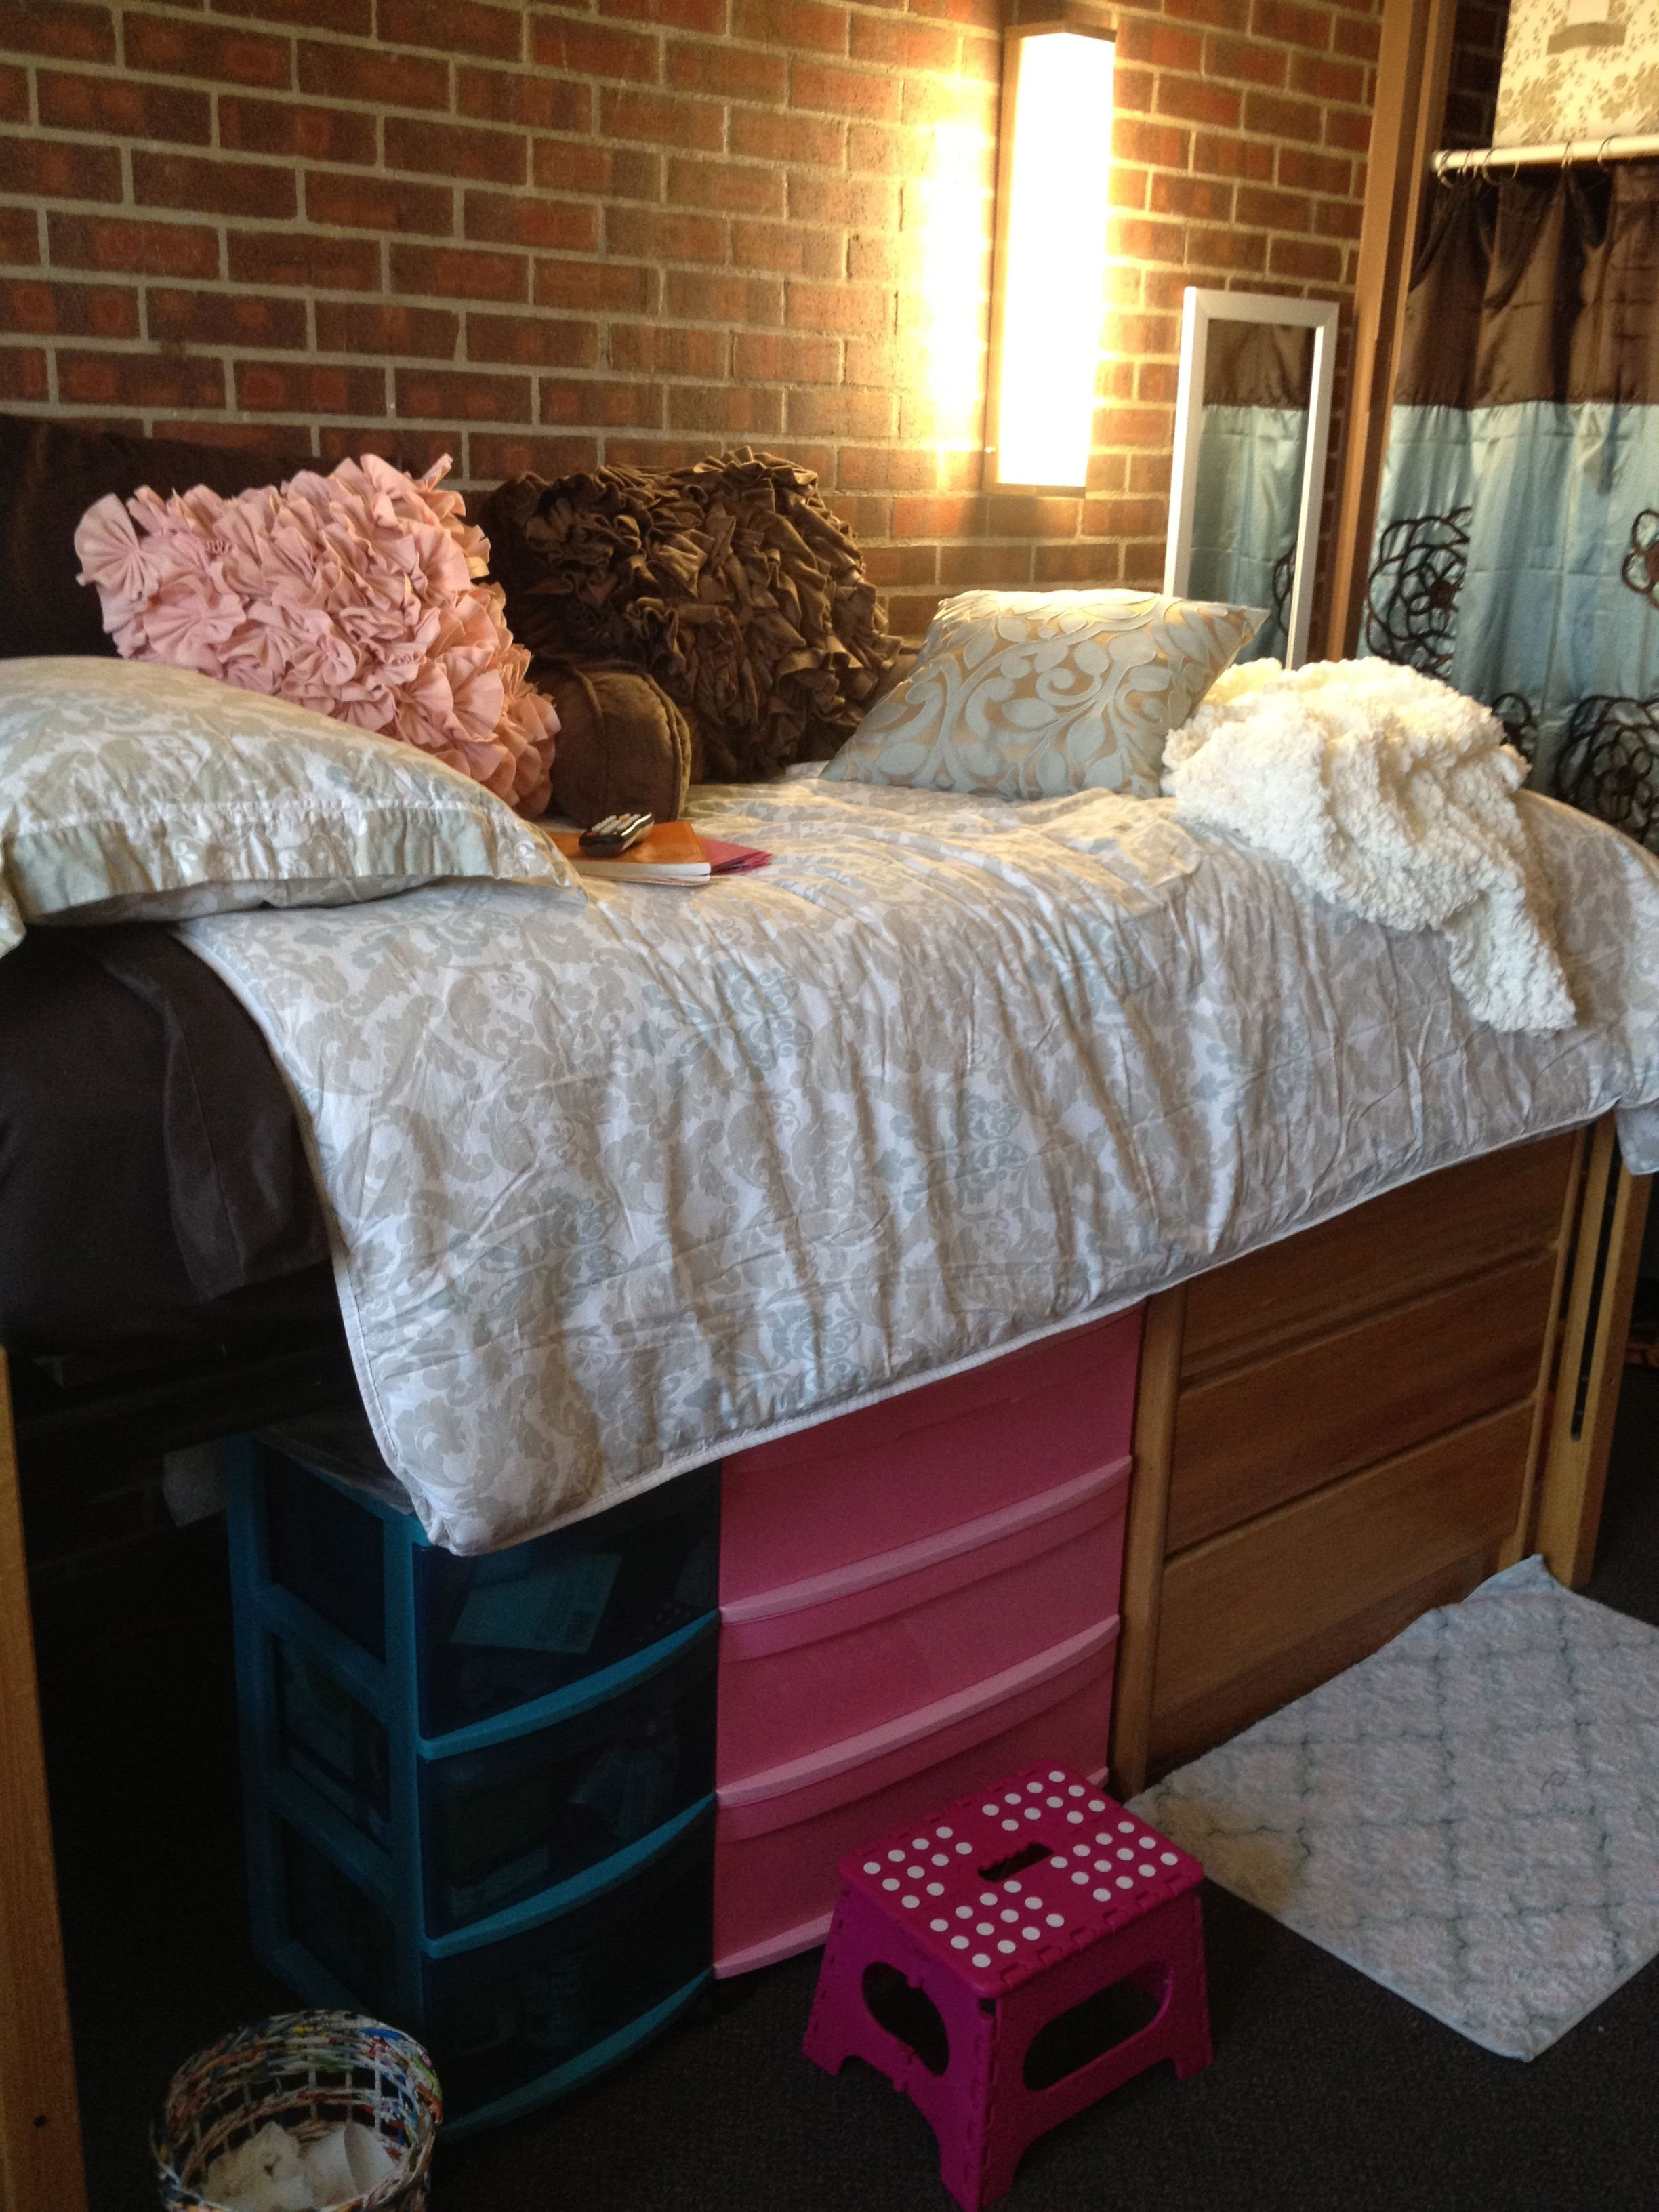 Going to need to do this to fit all my clothes in my dorm - Dorm underbed storage ideas ...